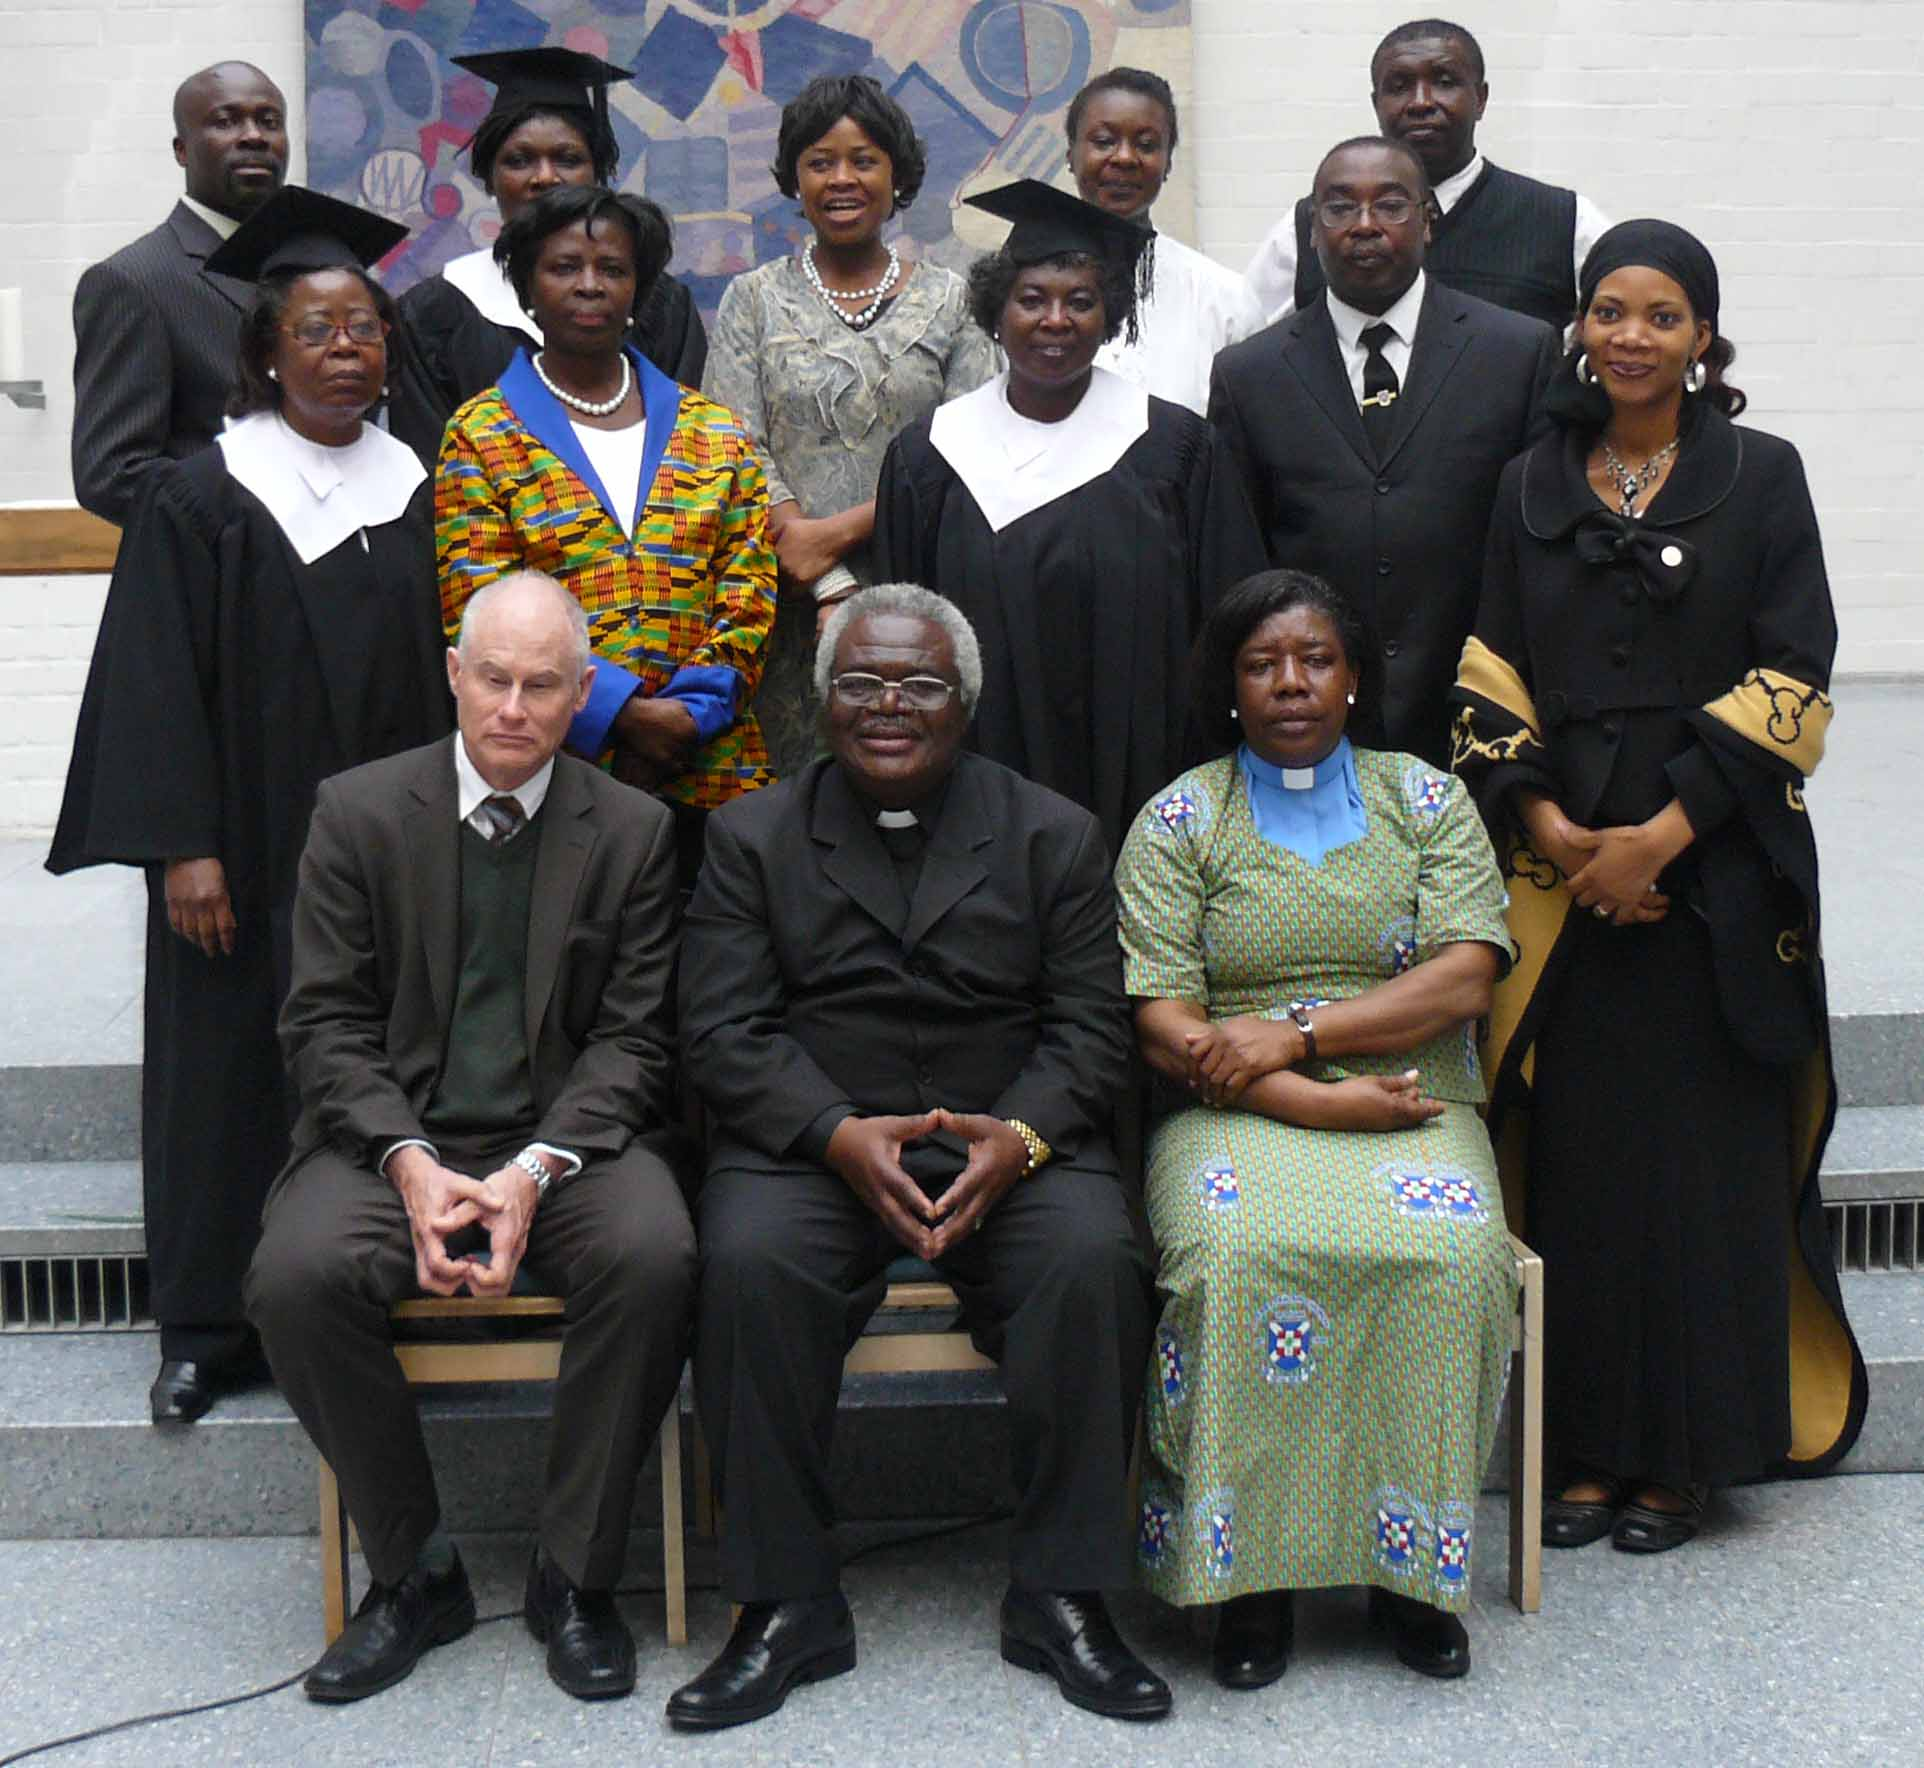 The Choir with the Moderator of the PCG, Rev. Riley Raudonat and Rev. Elizabeth Aduama